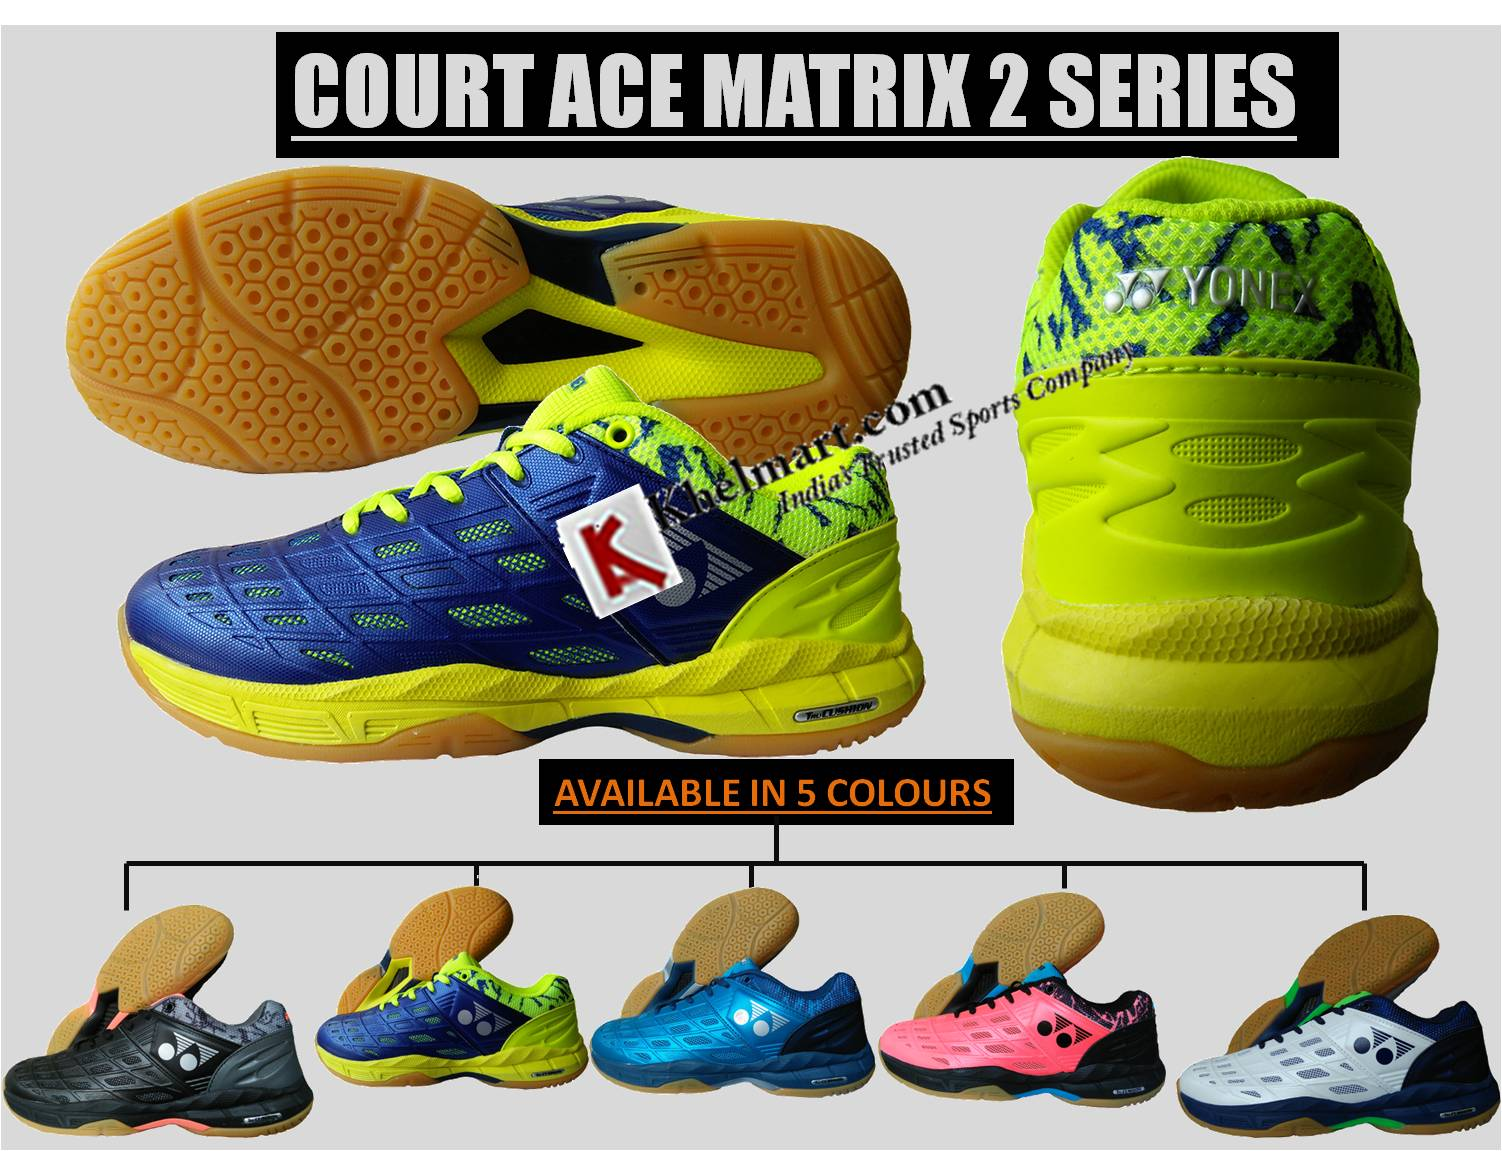 YONEX_COURT_ACE_MATRIX_2_BADMINTON_SHOES_SERIES.jpg